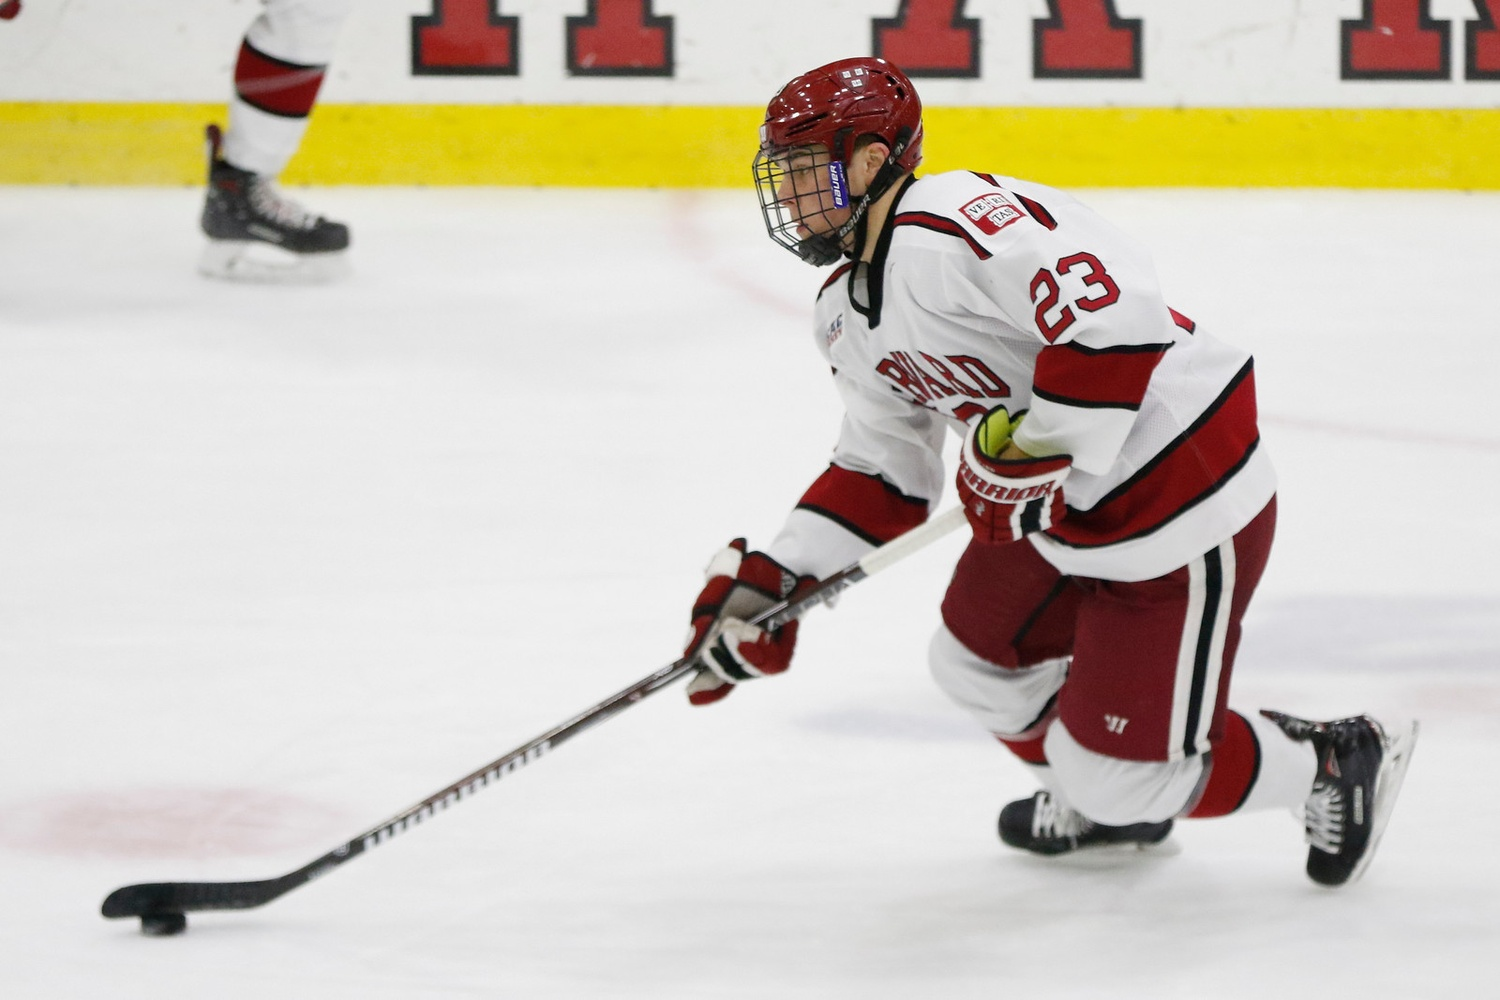 On Friday night, the Crimson skates in its first match since a Beanpot semifinal loss, looking to right the ship after Monday's disappointment.